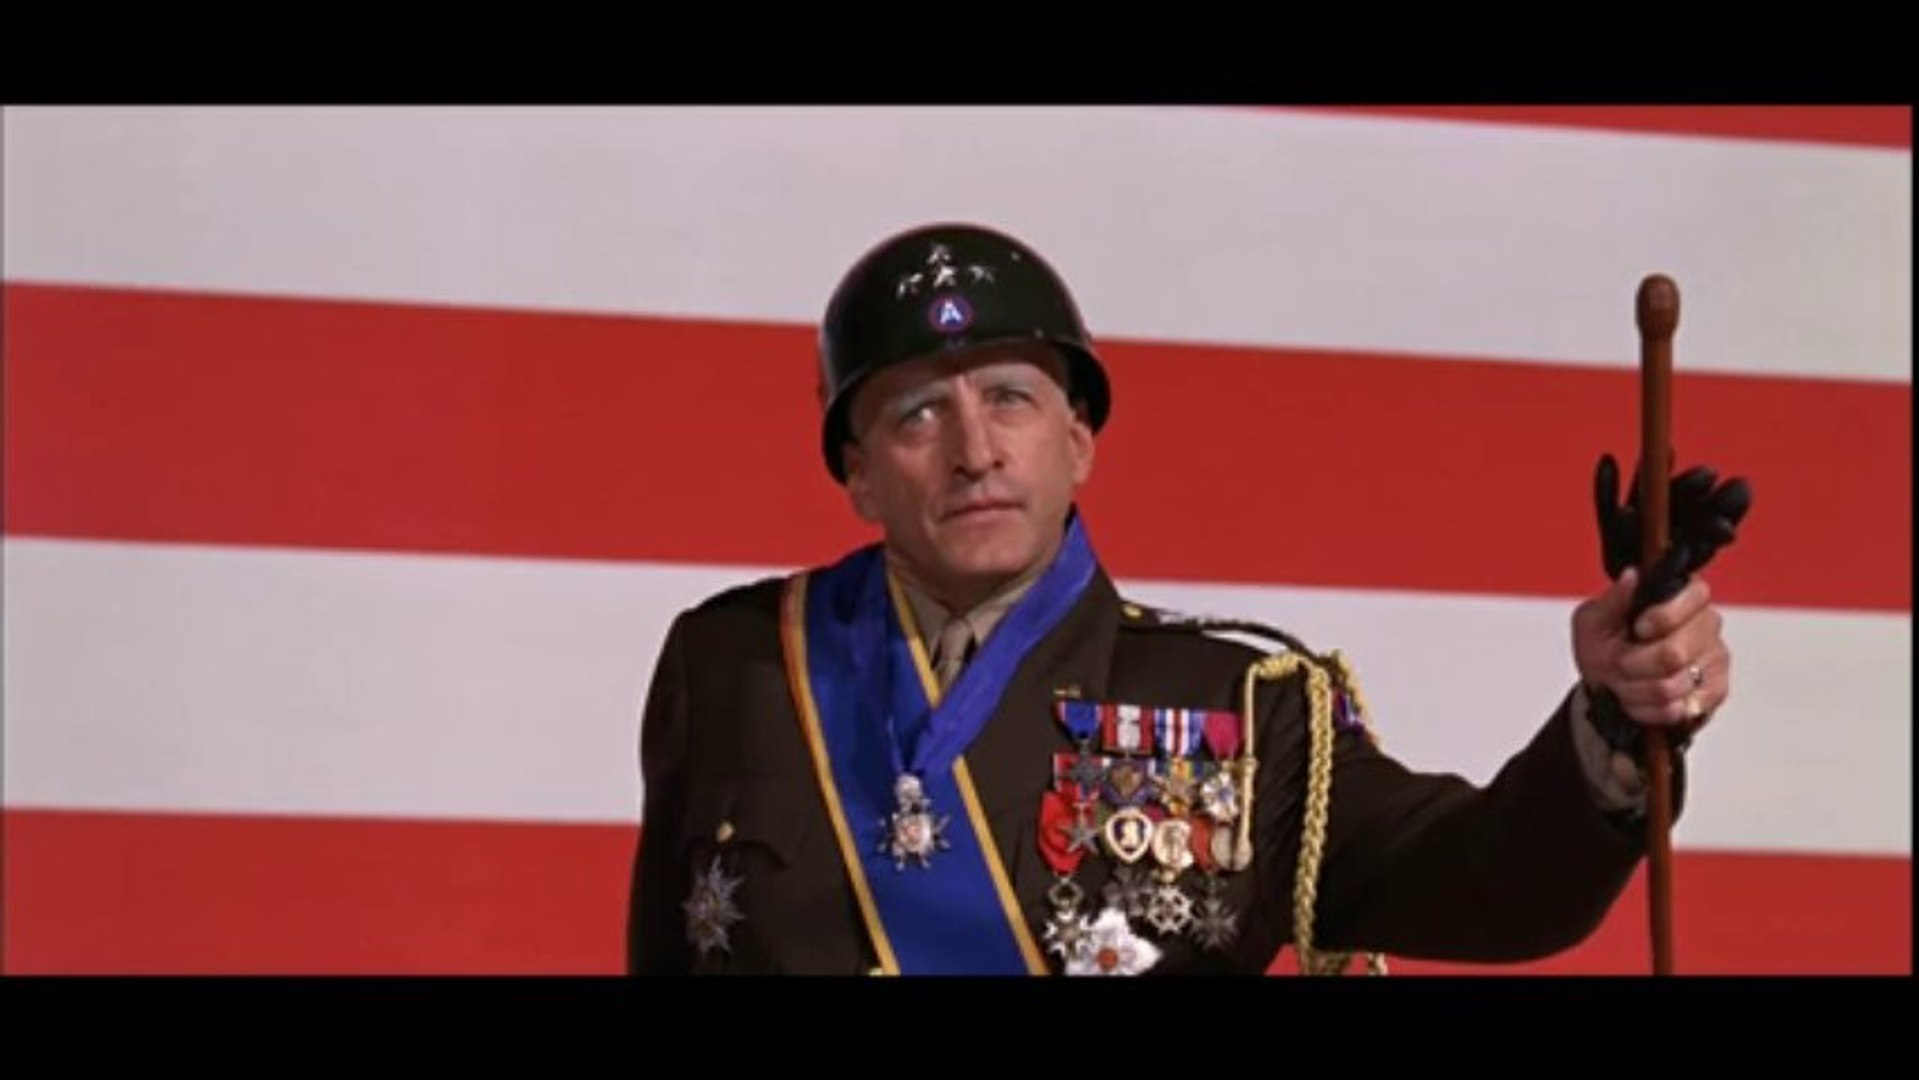 Patton's Opening speech to the troops - George C. Scott